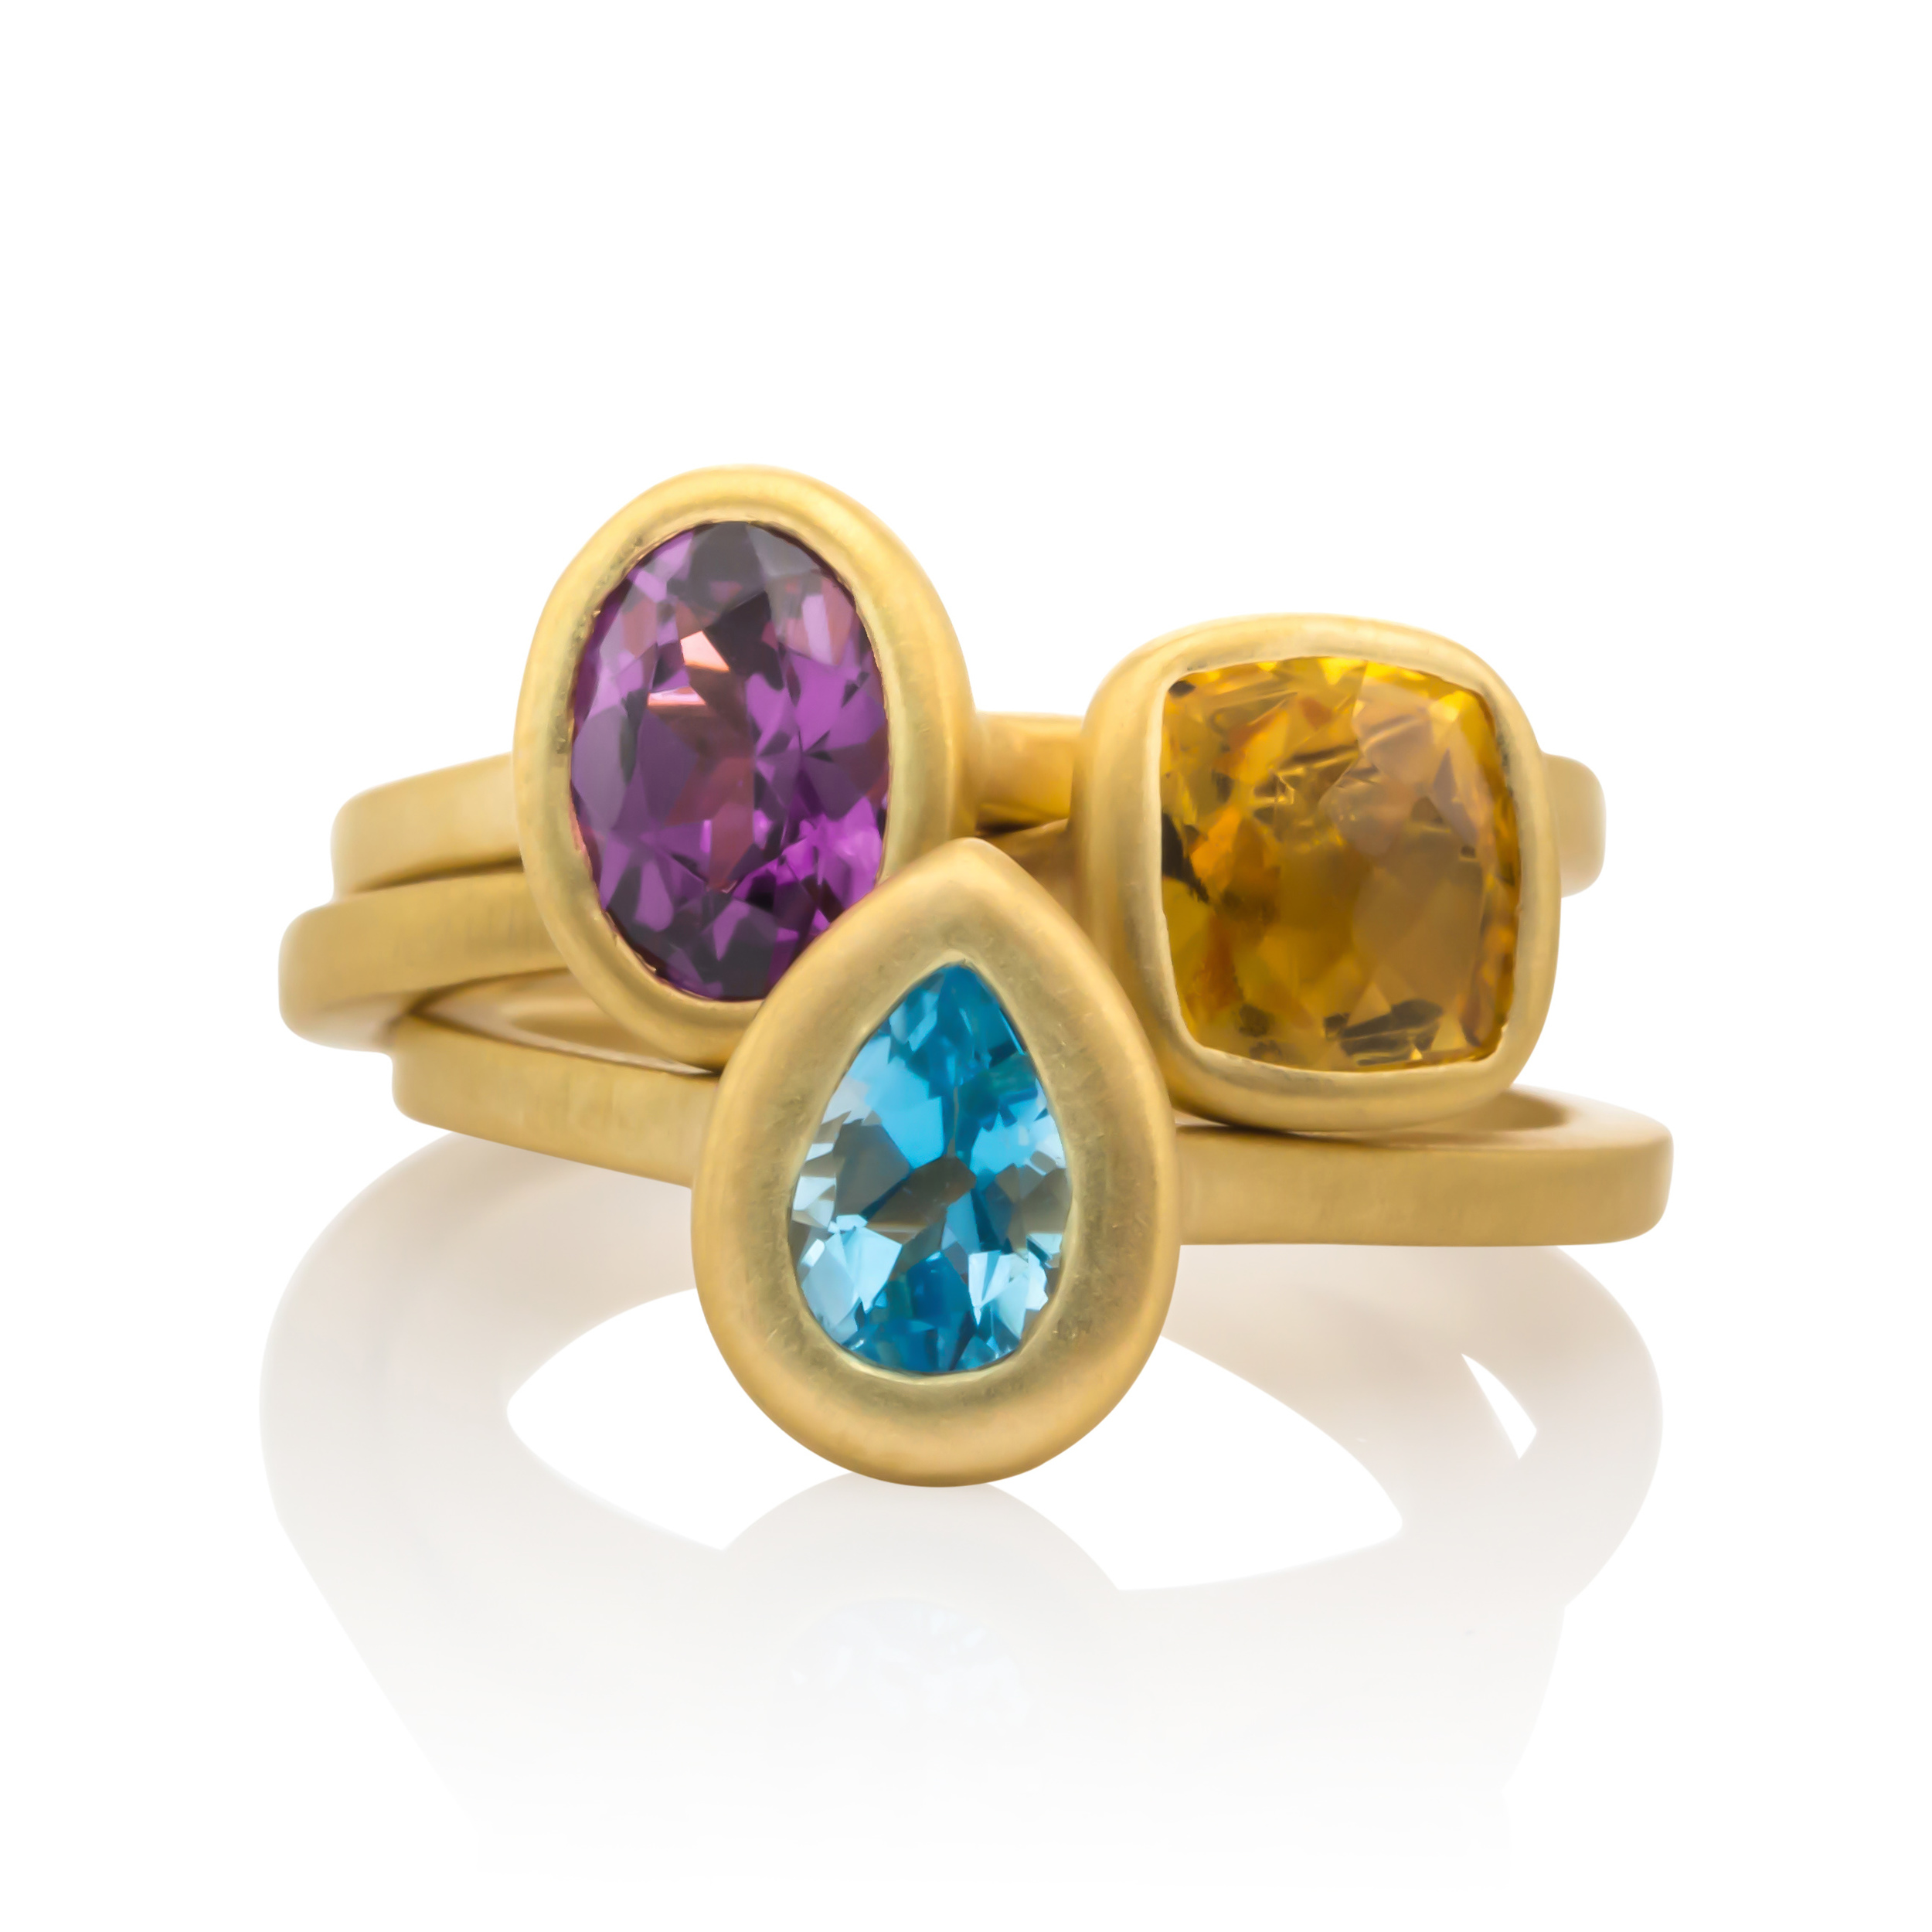 CUSTOM AMETHYST, CITRINE AND BLUE TOPAZ BEZEL SET STACKING RINGS designed to include our client's children's birthstones.